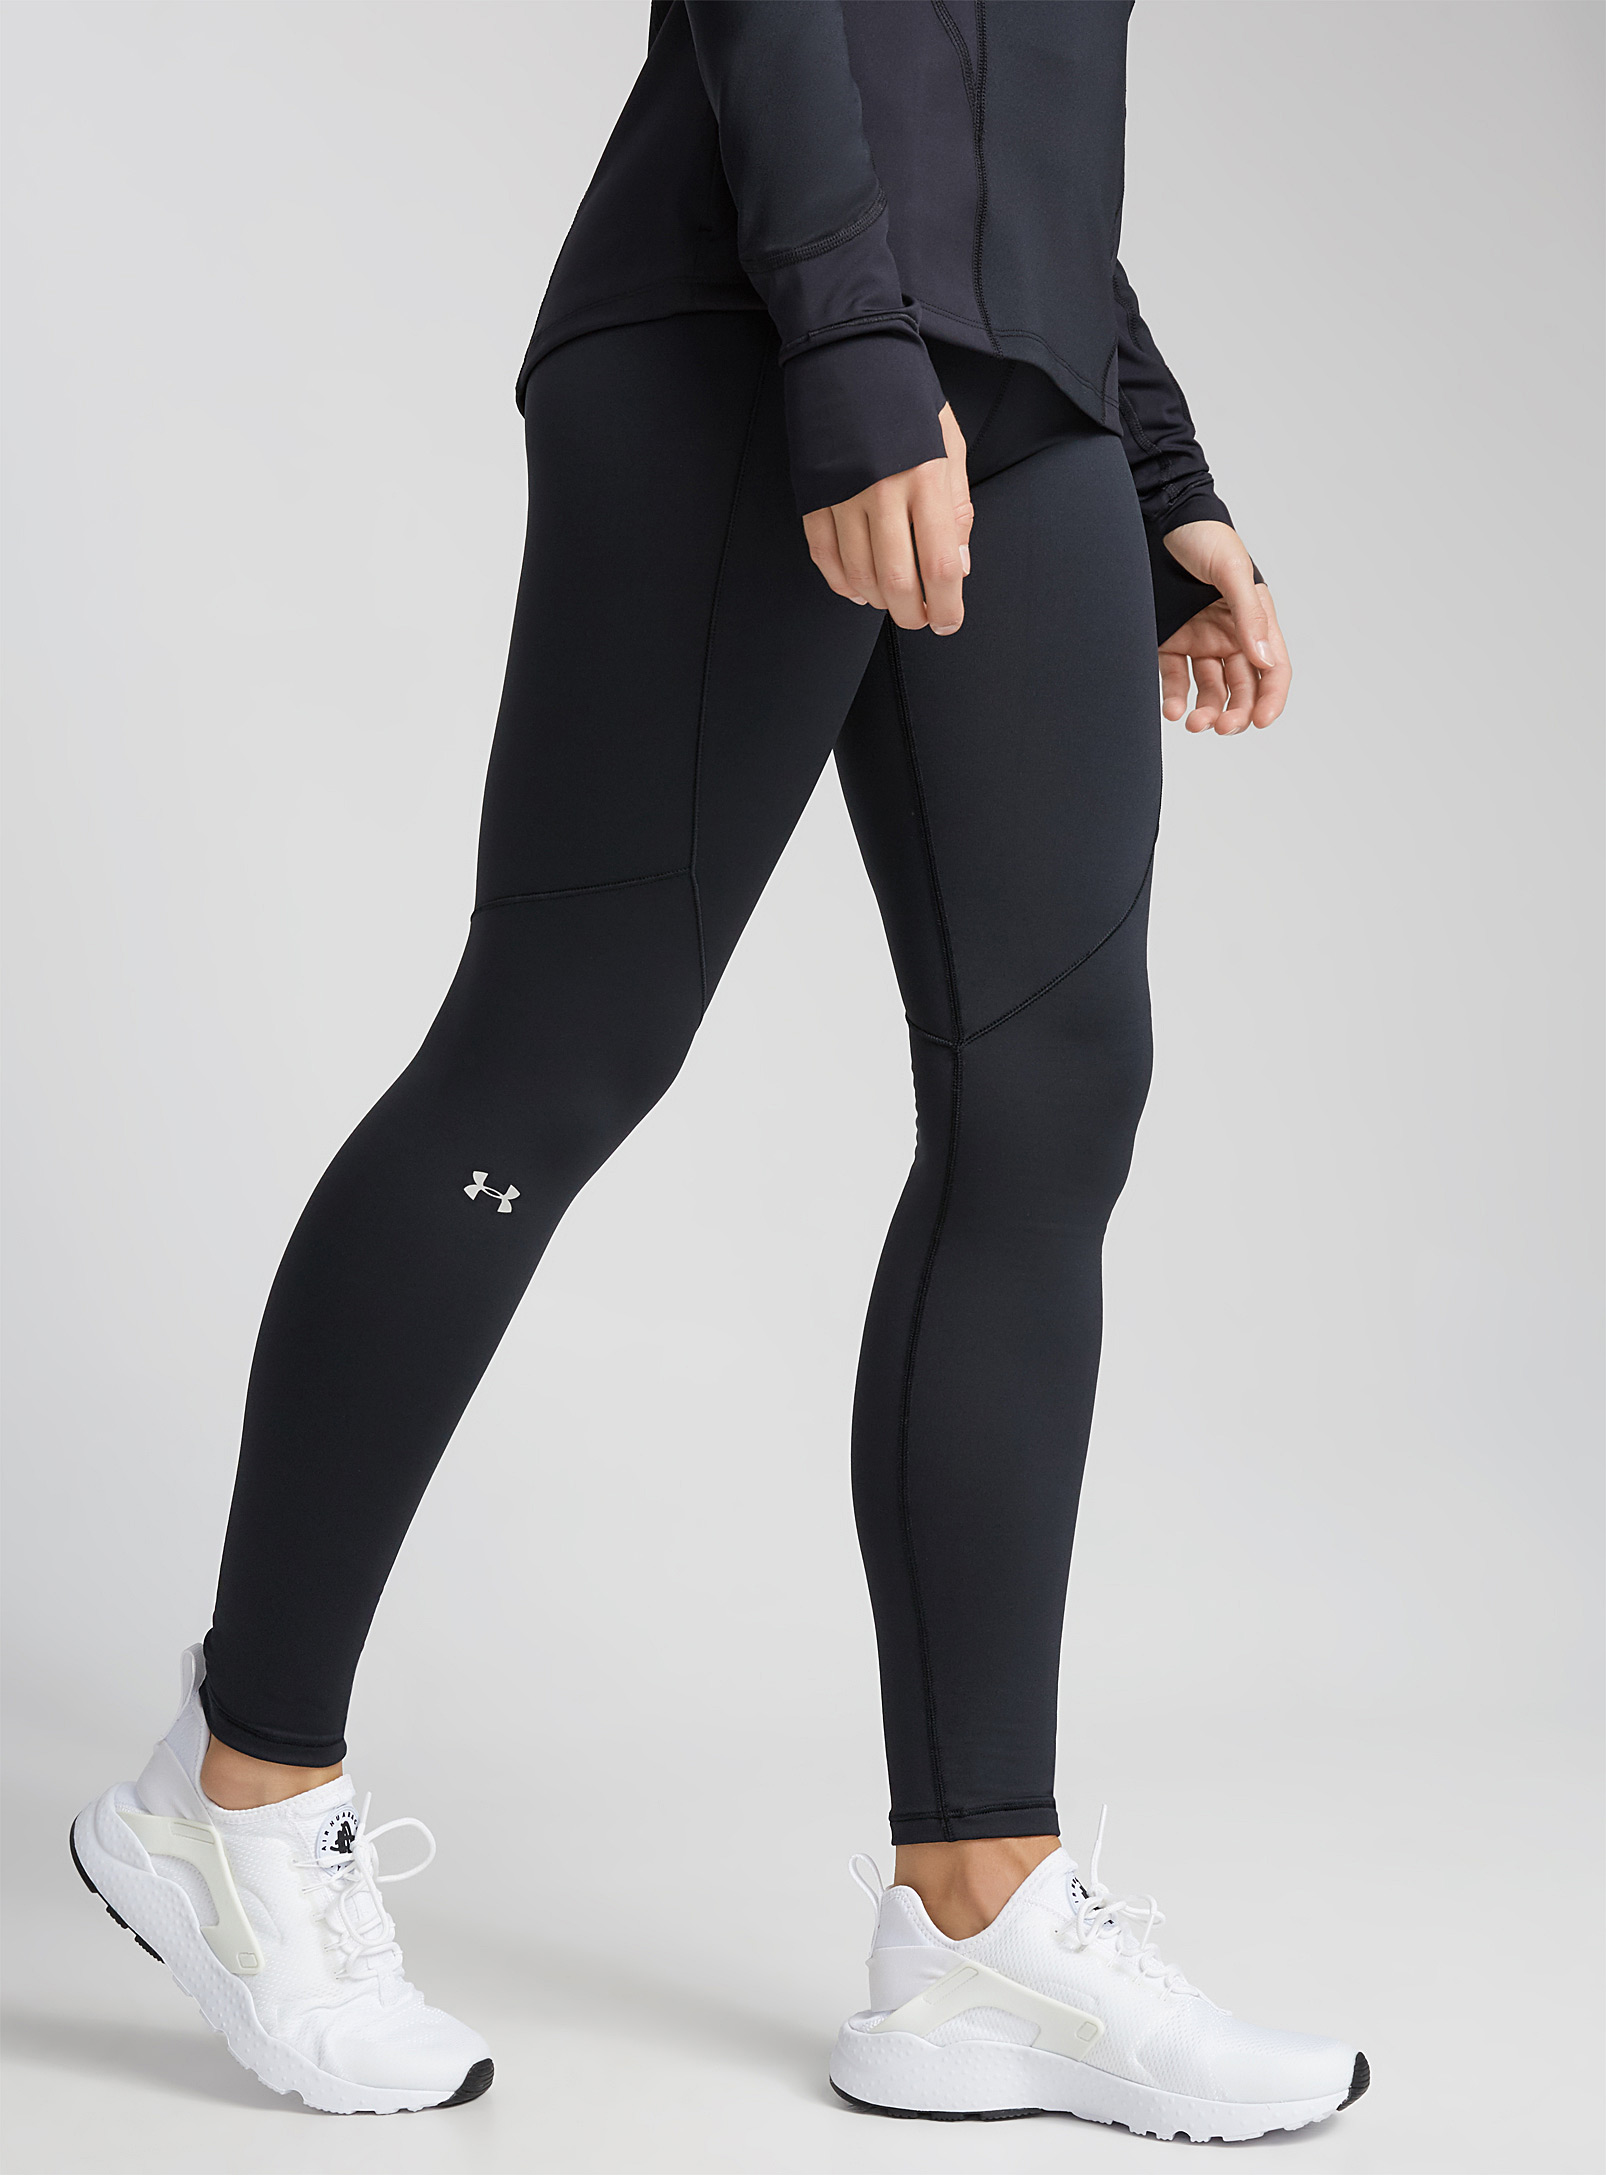 790003b30884c ColdGear Compression Leggings